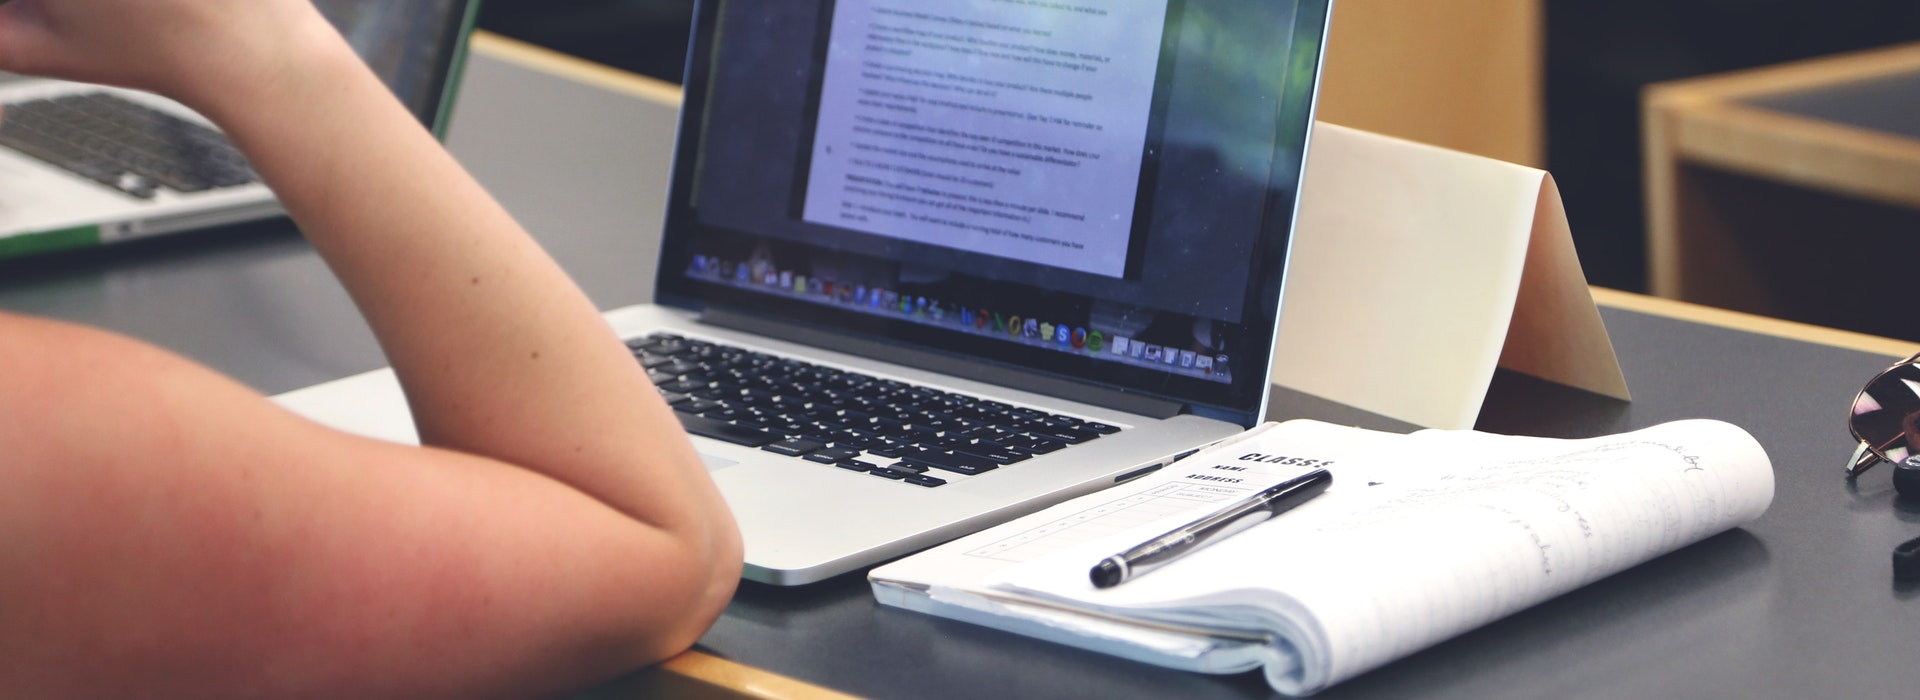 Close up of a person's arm resting on a desk with a laptop and notebook